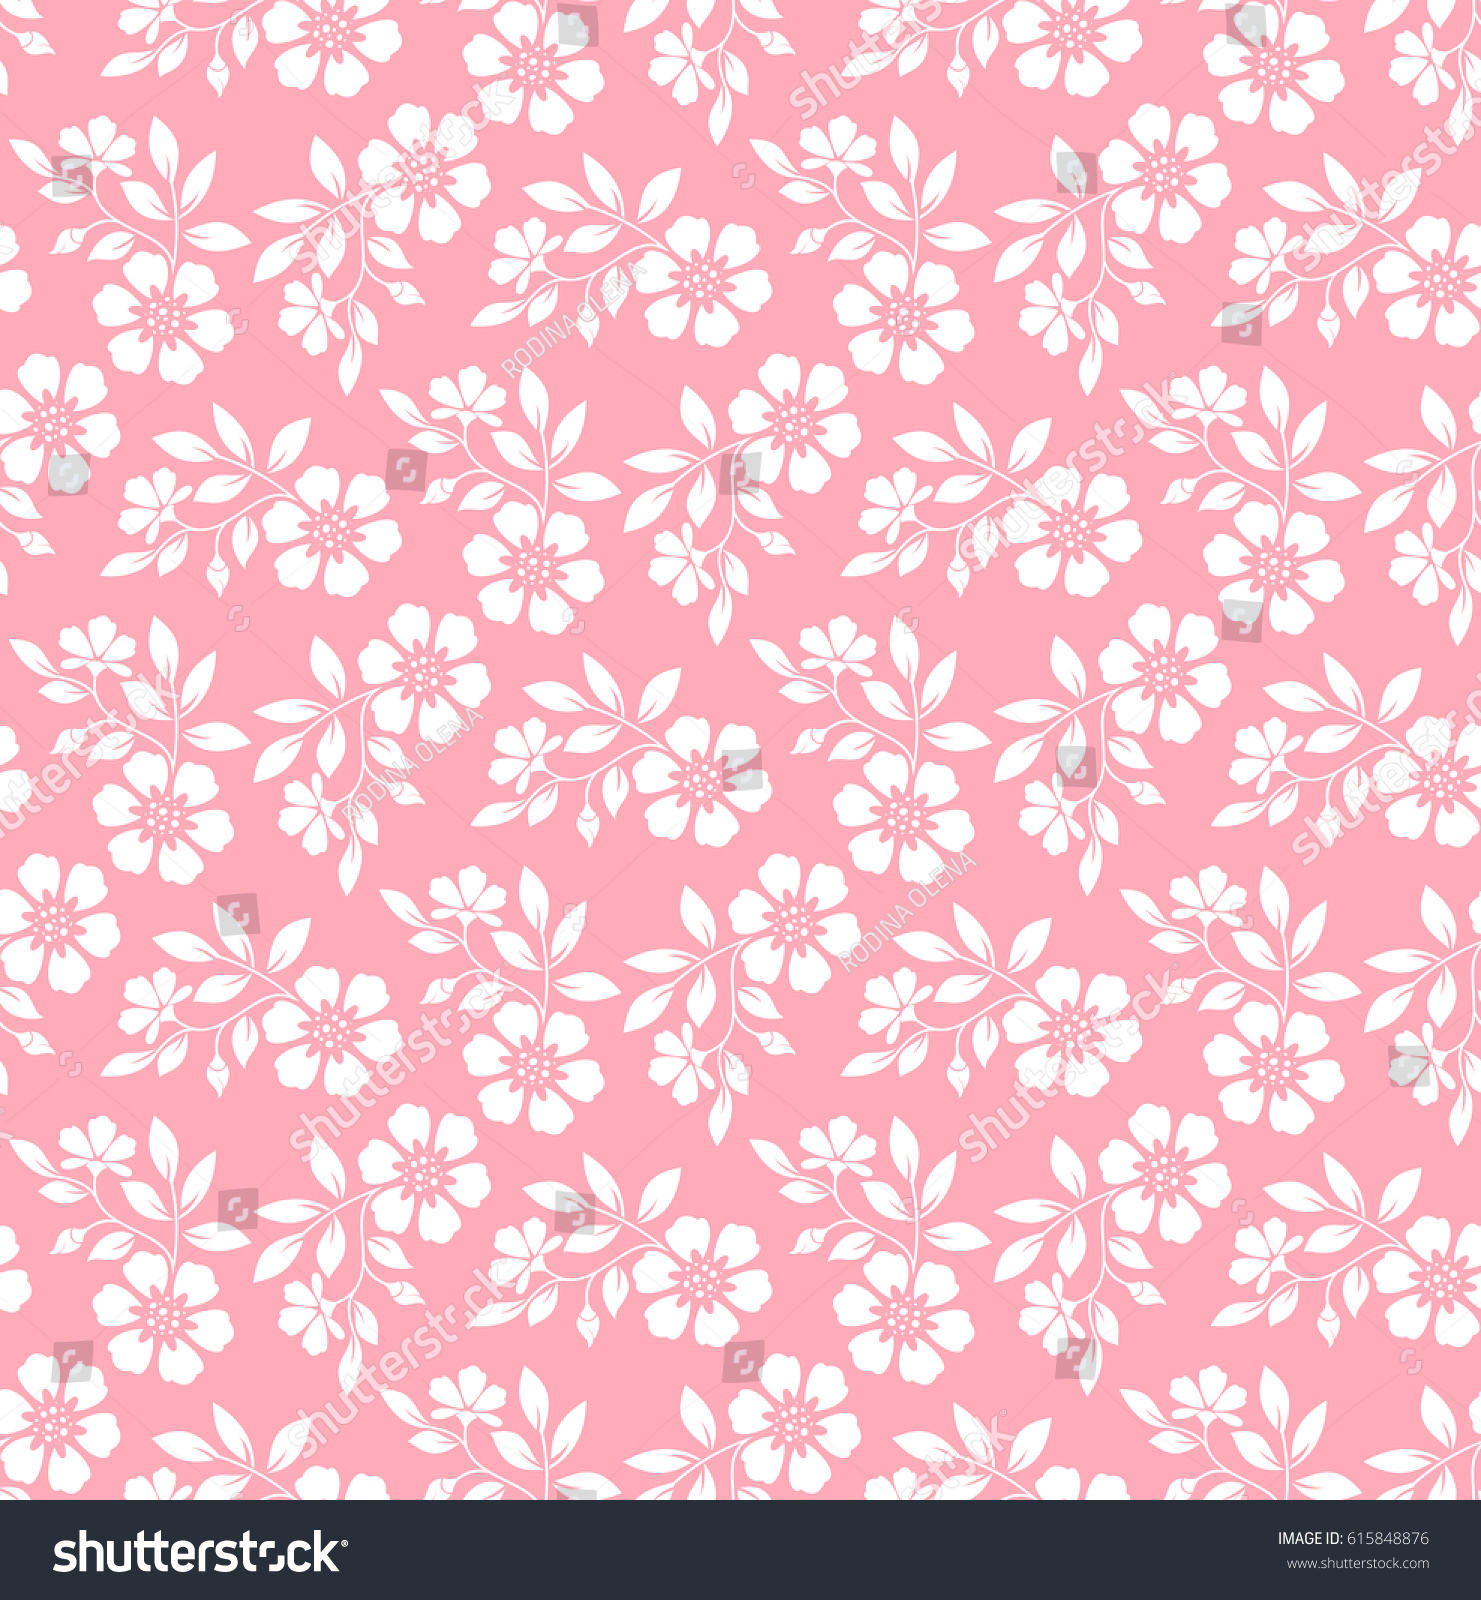 Damask Seamless Floral Pattern Royal Wallpaper White Flowers On A